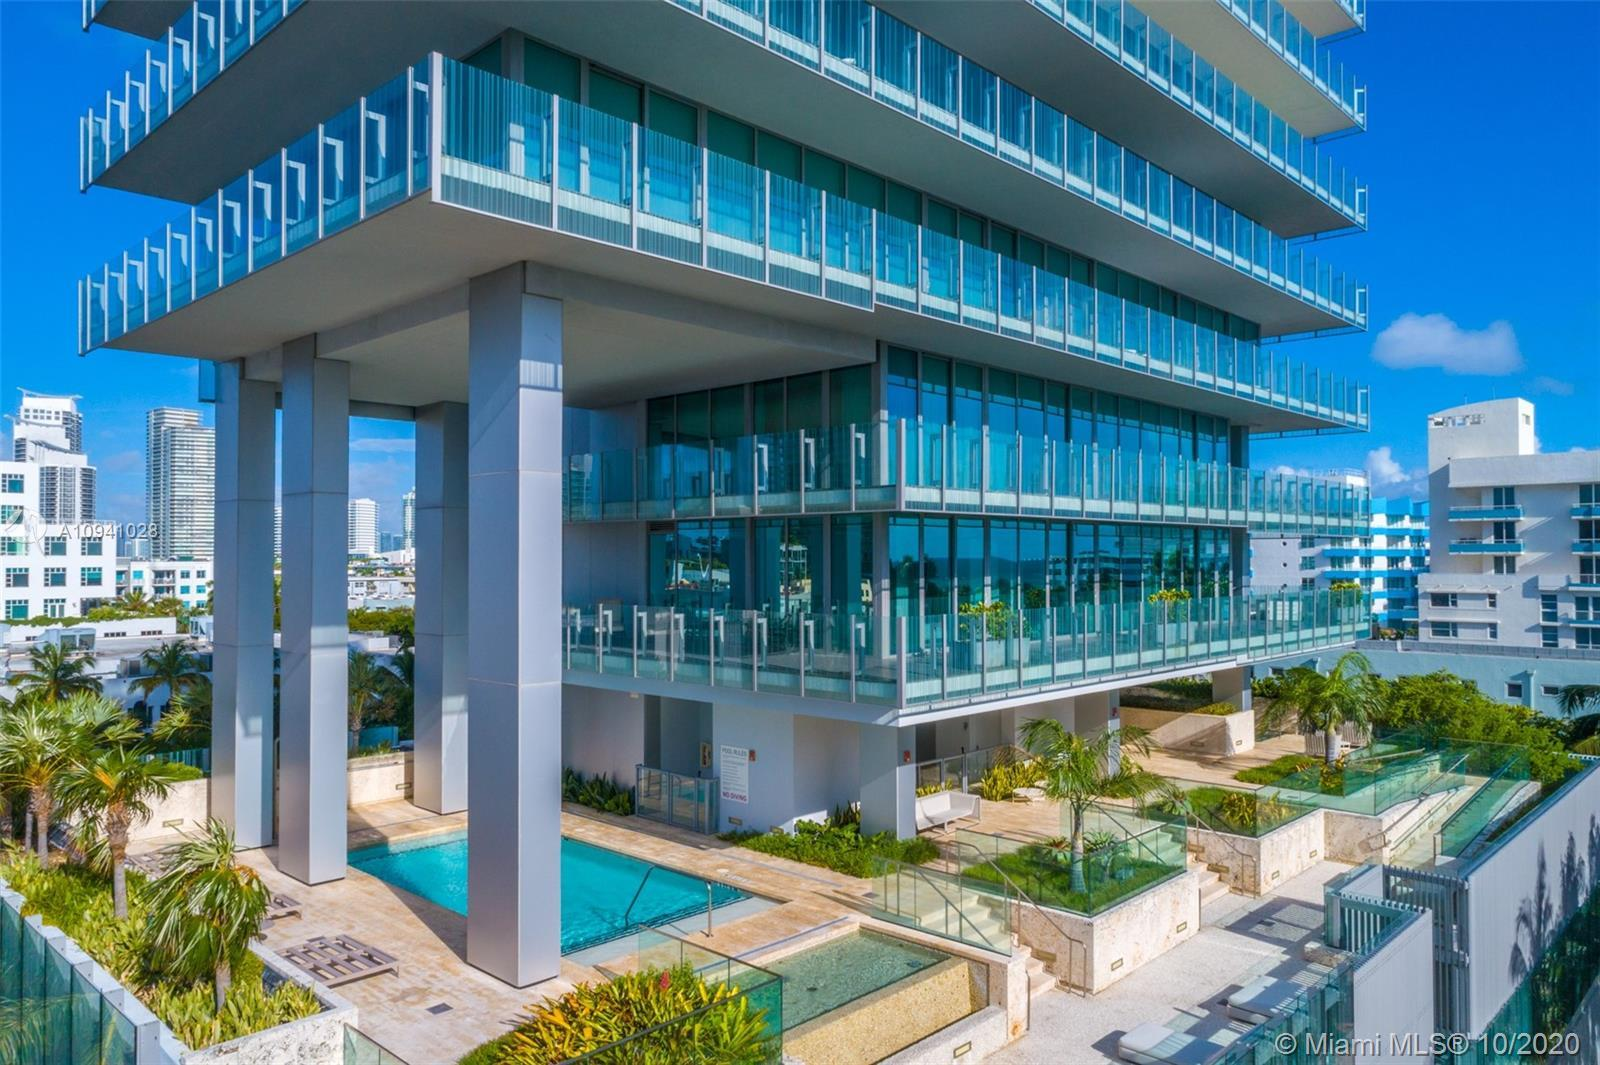 WELCOME TO GLASS AT 120 OCEAN DRIVE. TRULY EXCLUSIVE LUXURY LIVING, WITH ONLY 10 FULL FLOOR RESIDENC